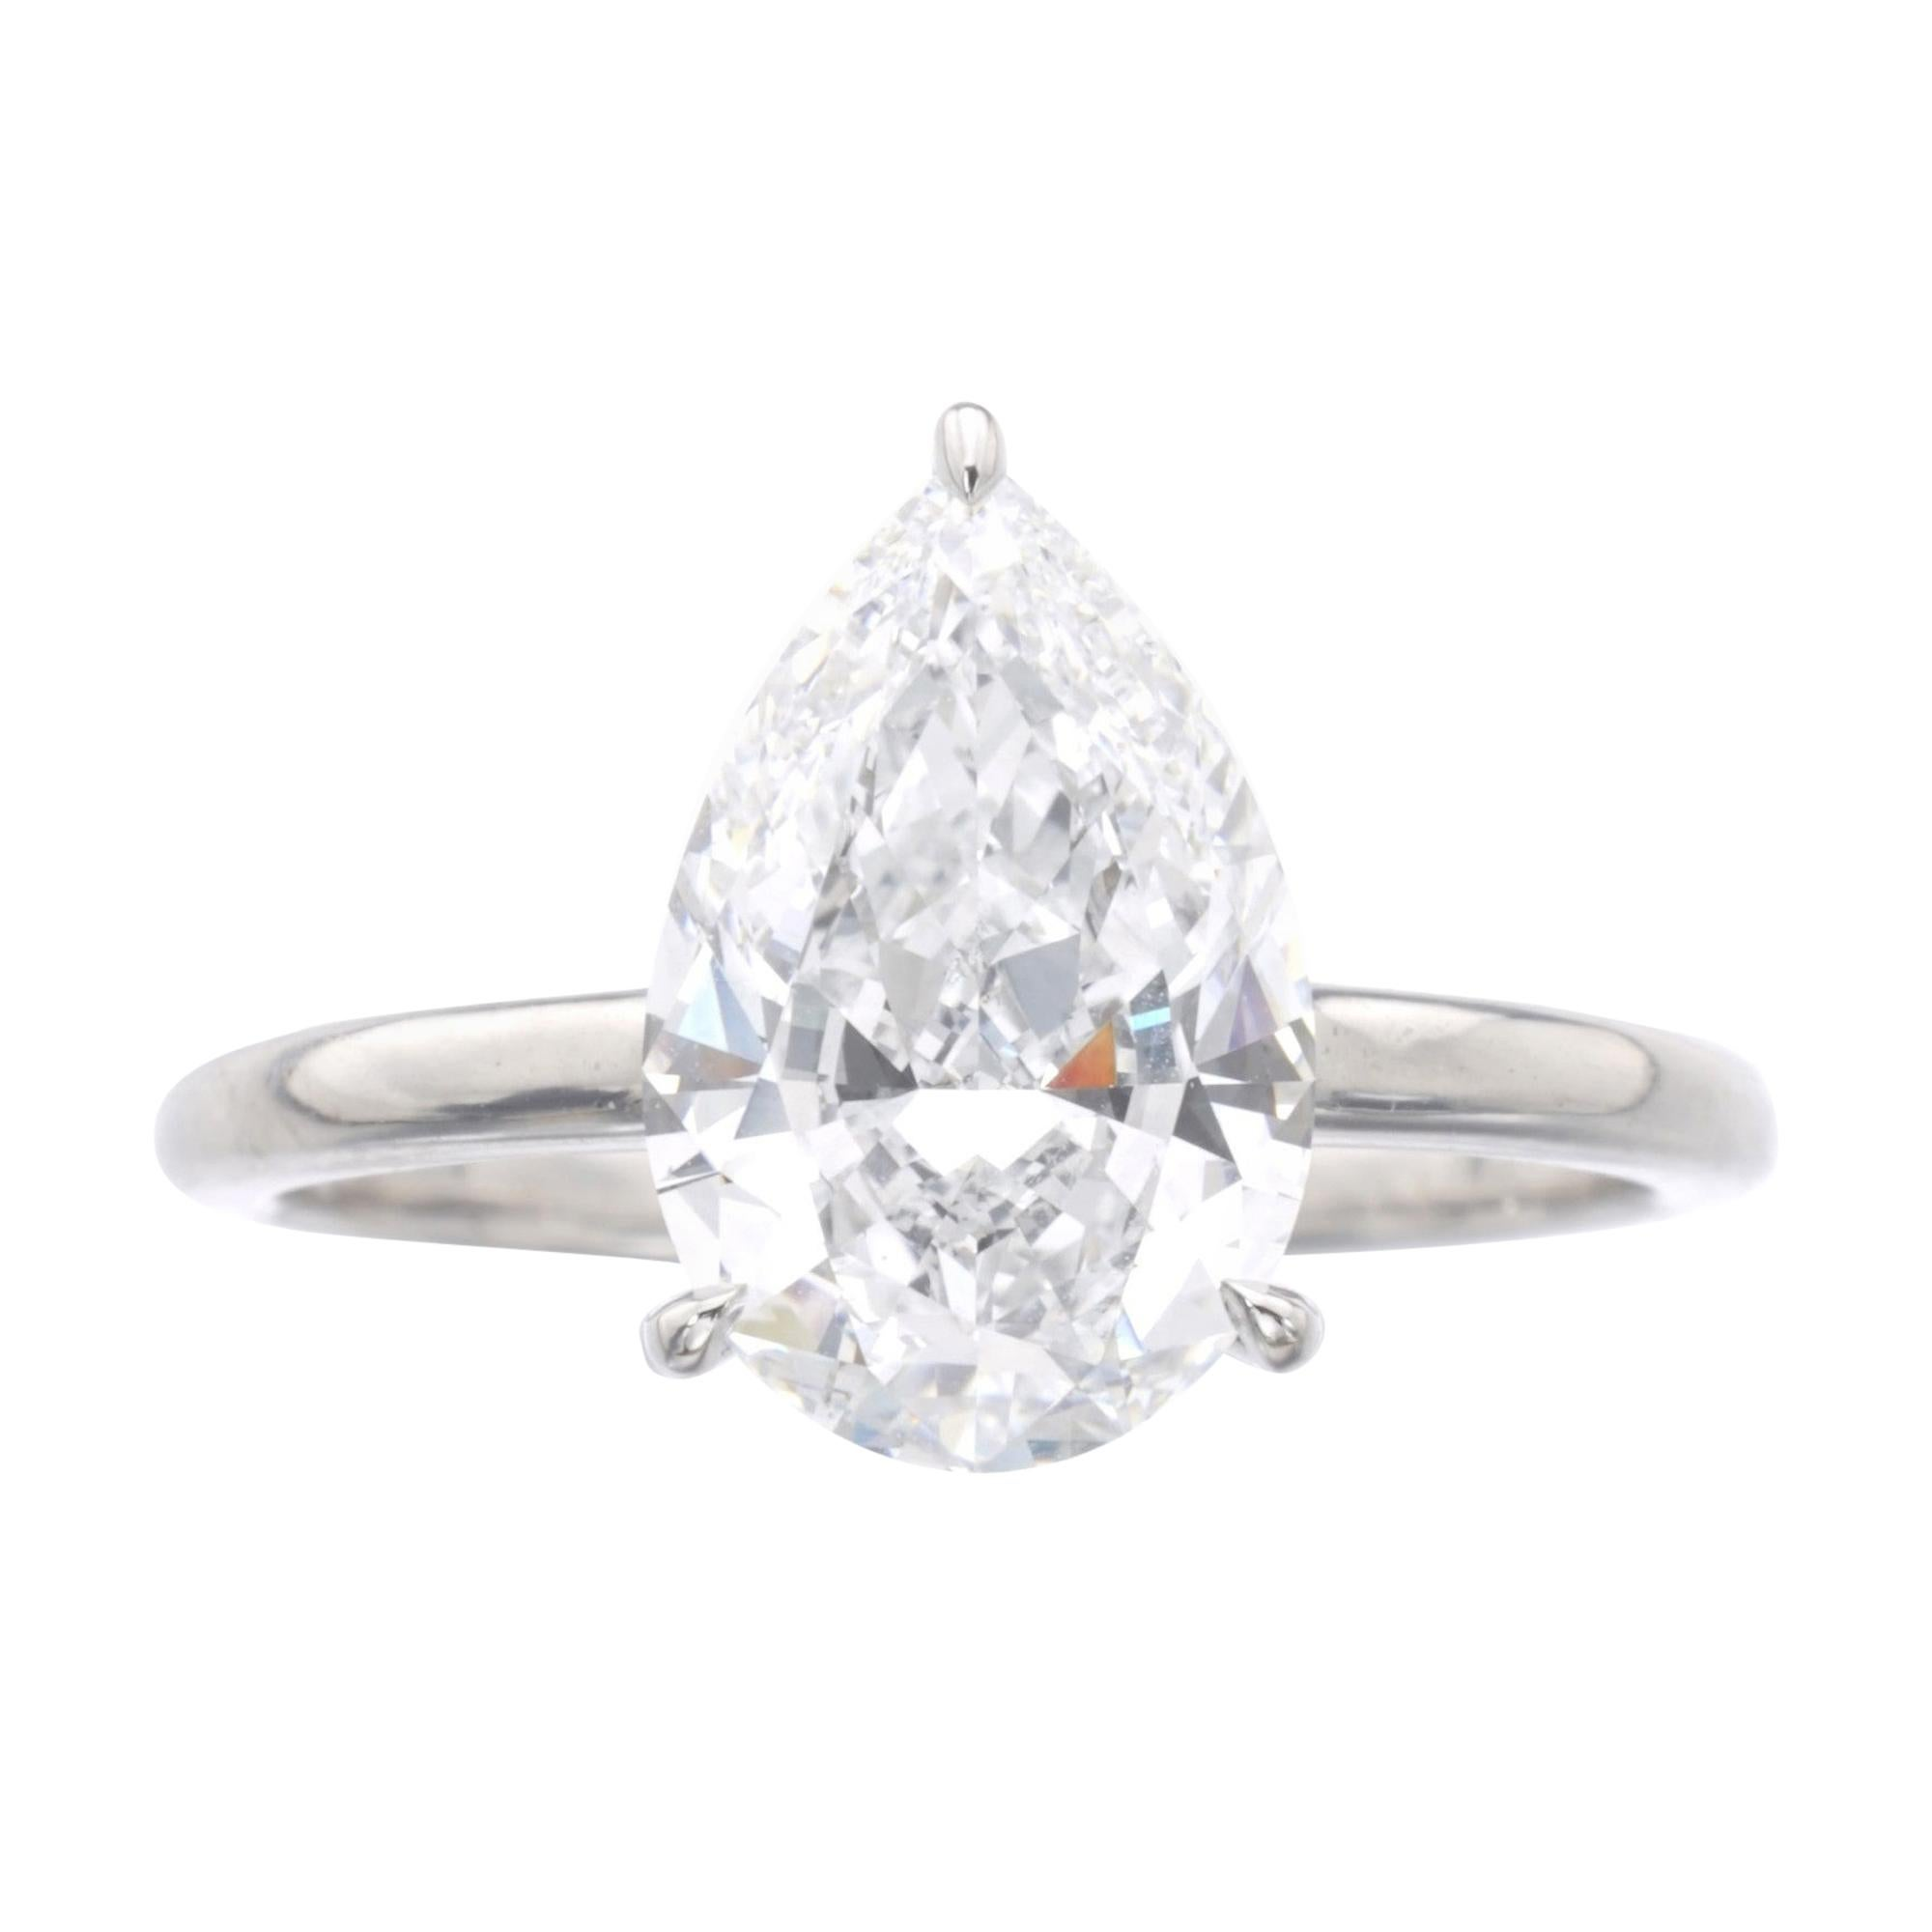 I Flawless D Color GIA Certified 2.21 Carat Pear Cut Diamond Platinum Ring